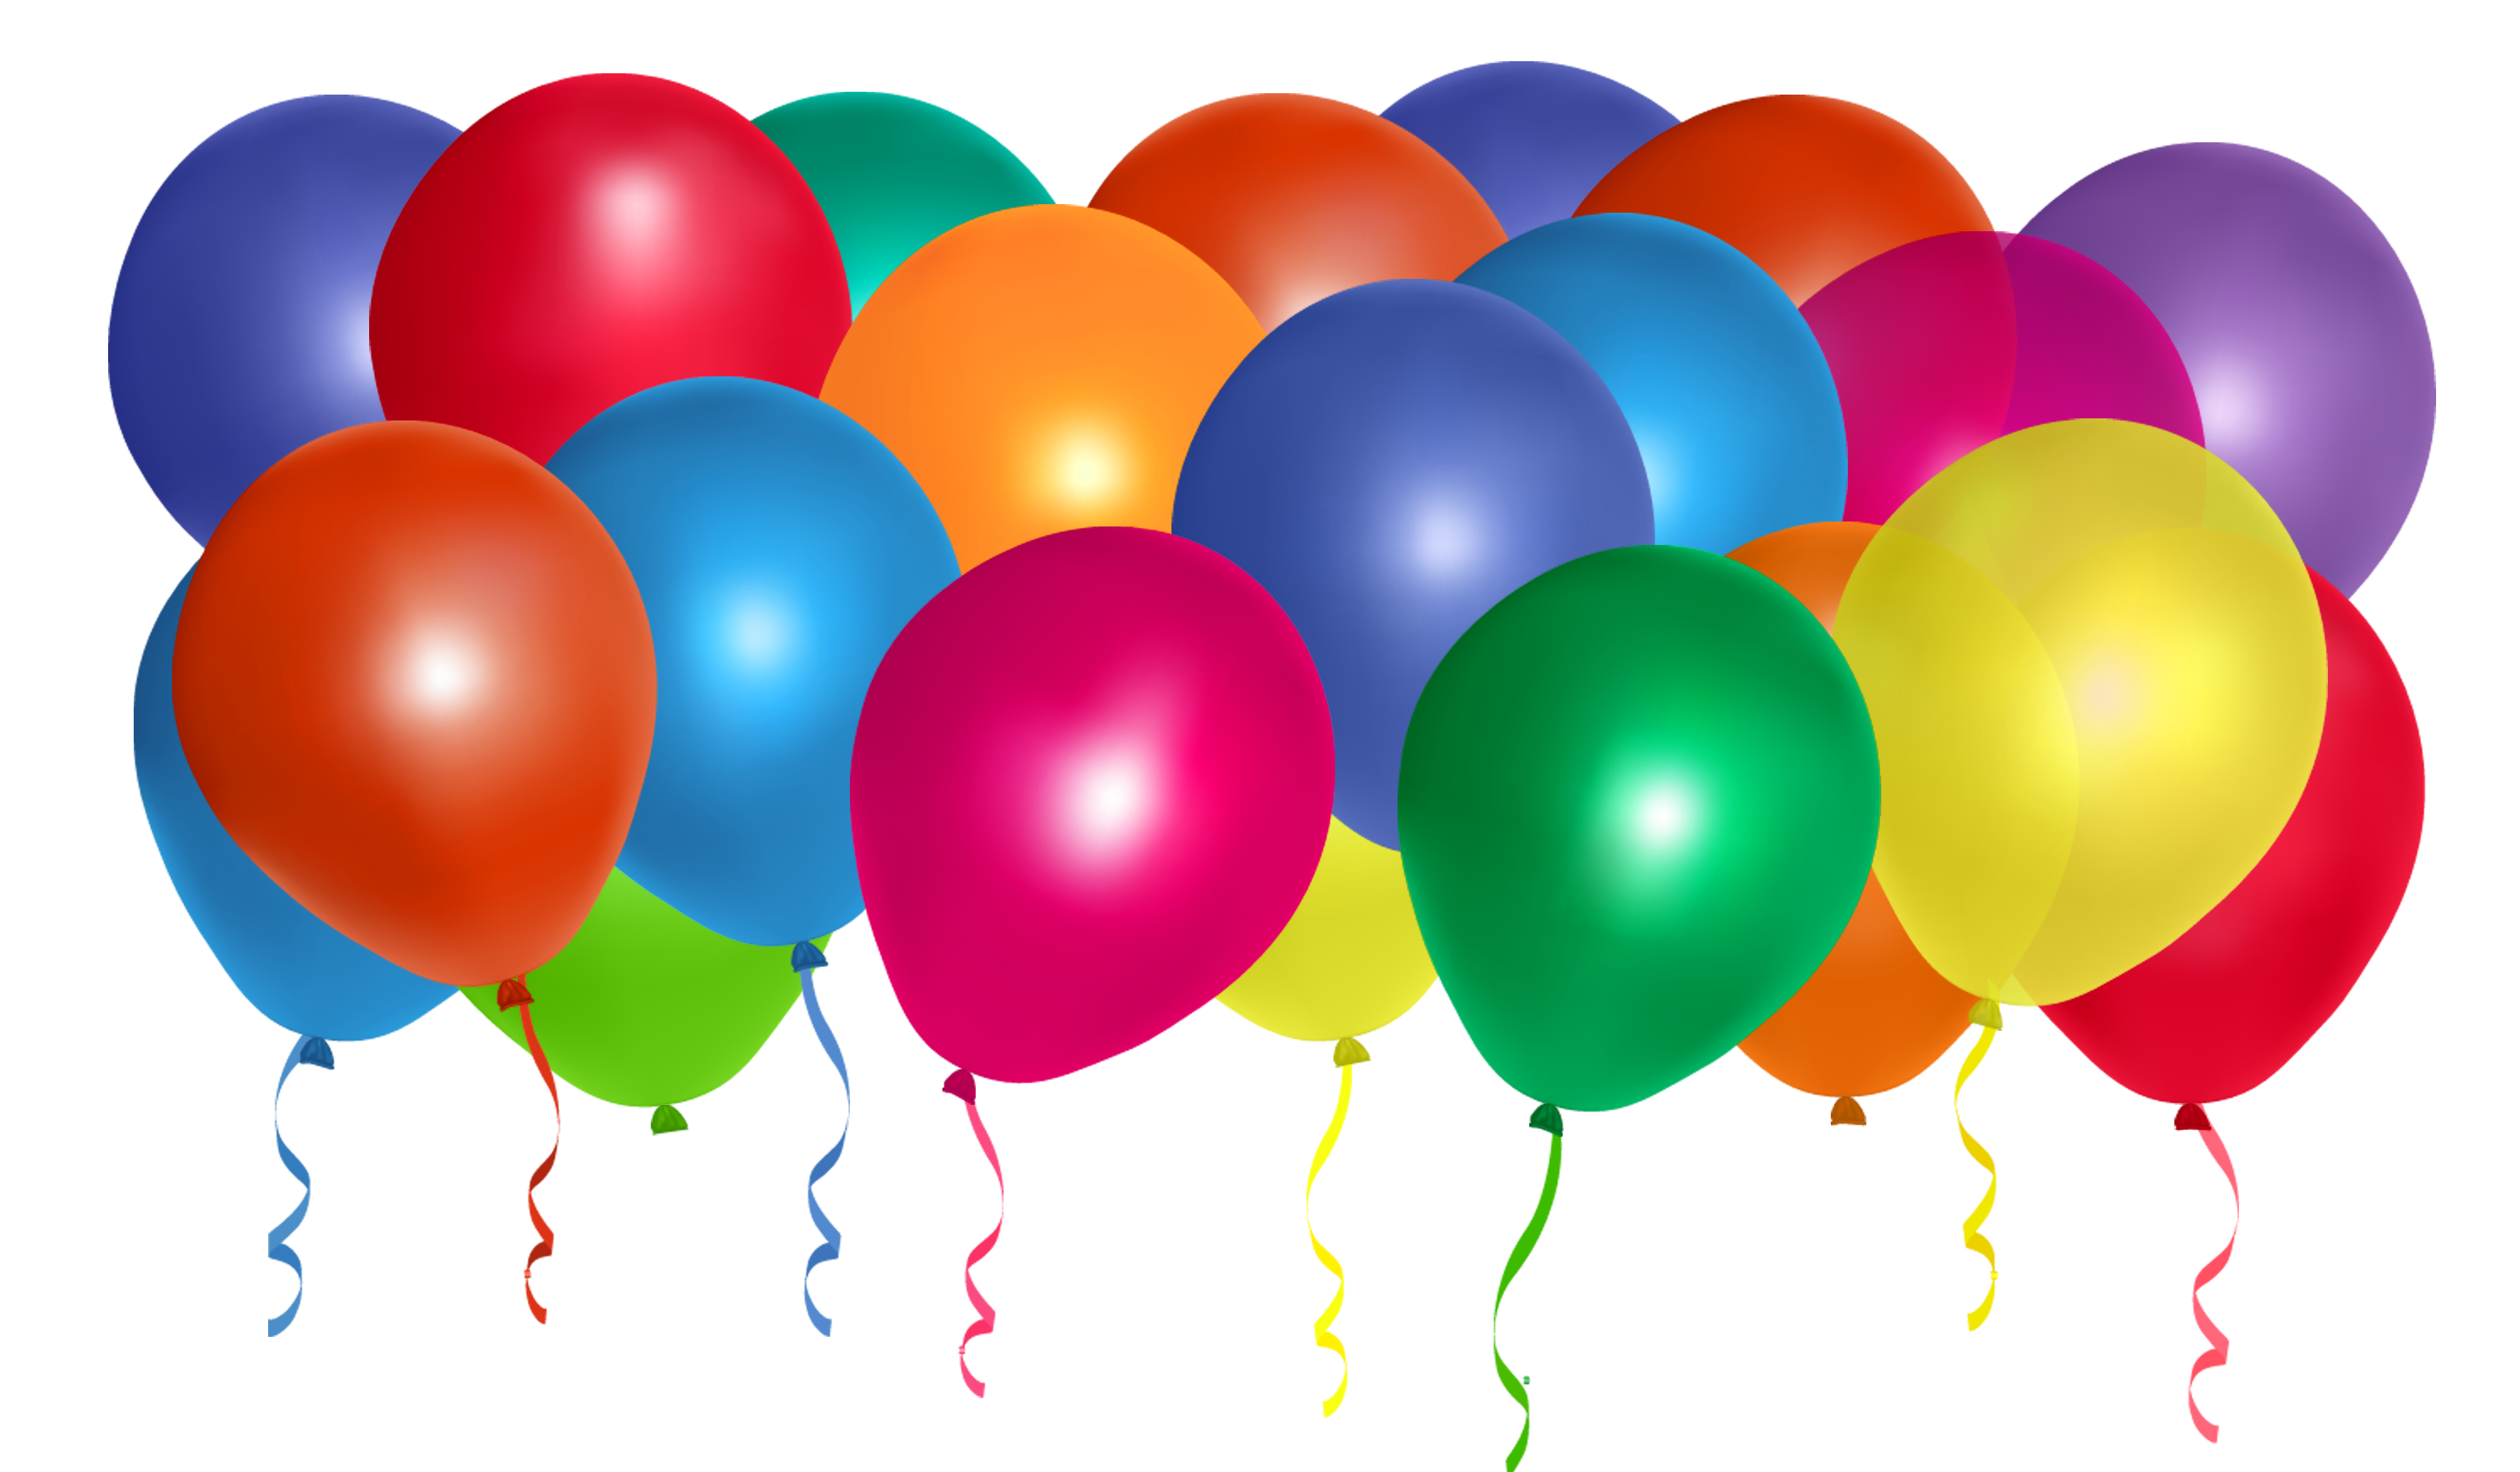 Balloon No Background Clipart - Clipart Kid